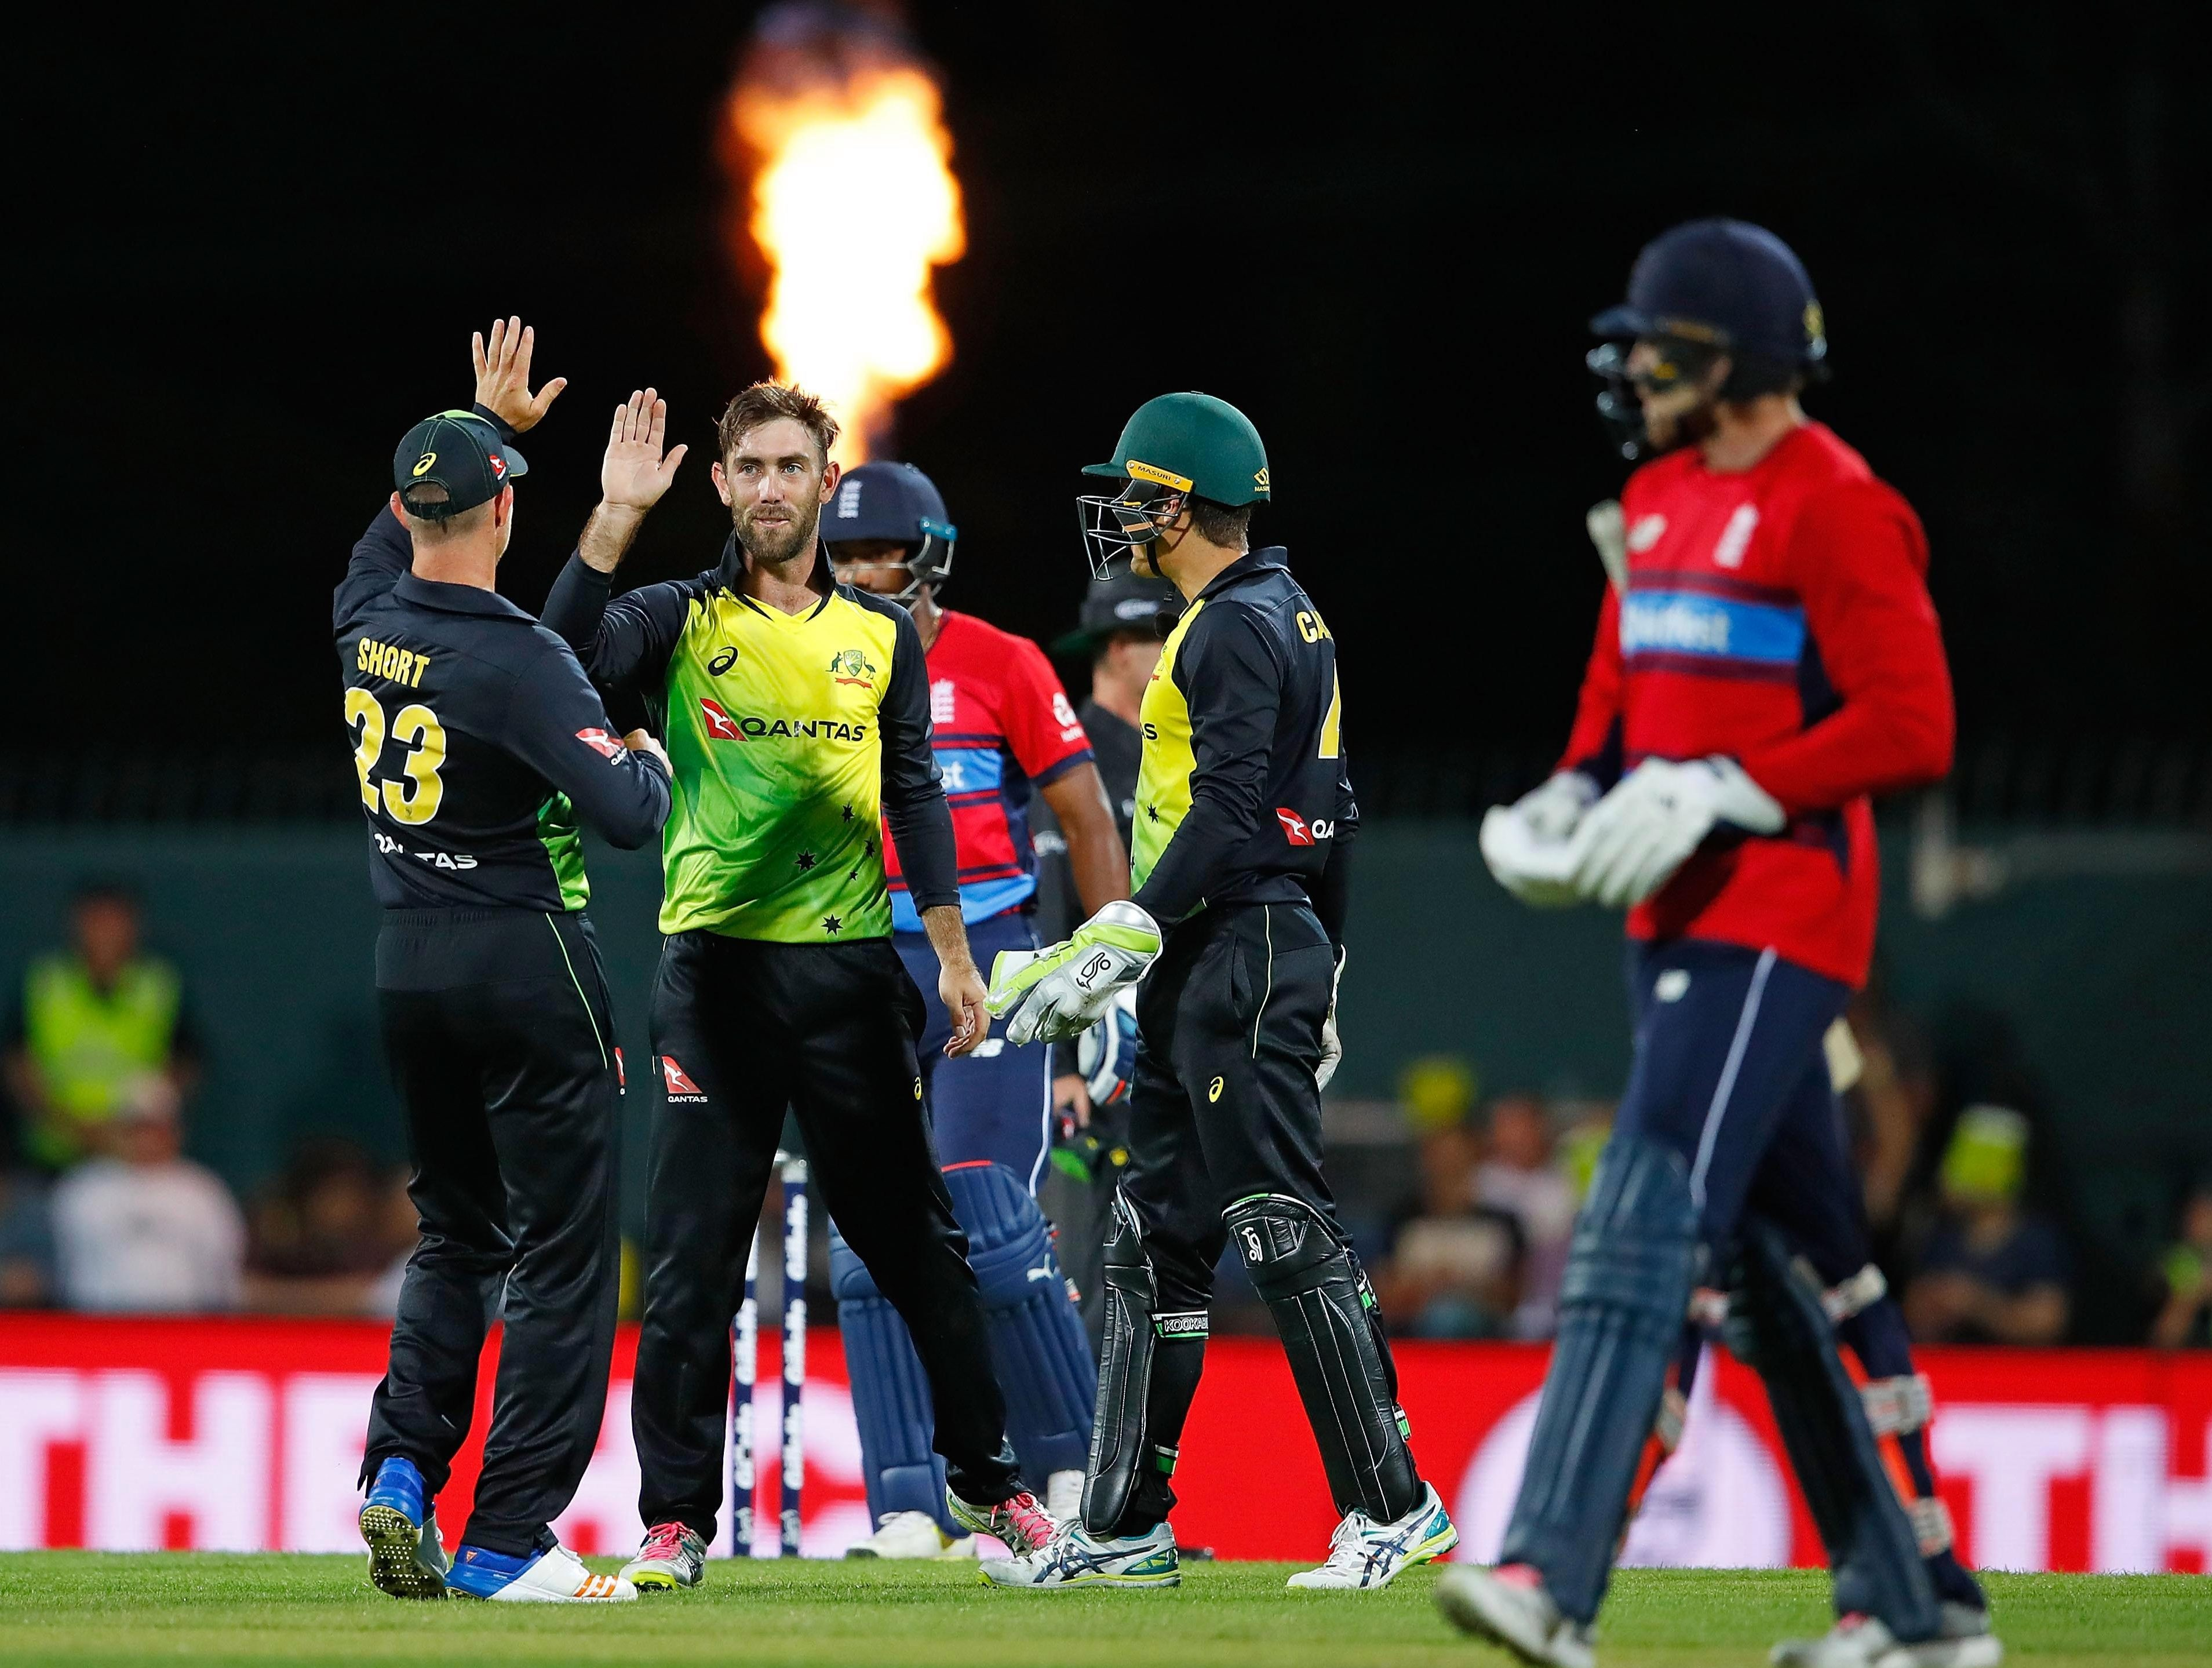 Glenn Maxwell took three wickets to go with his century in the first T20